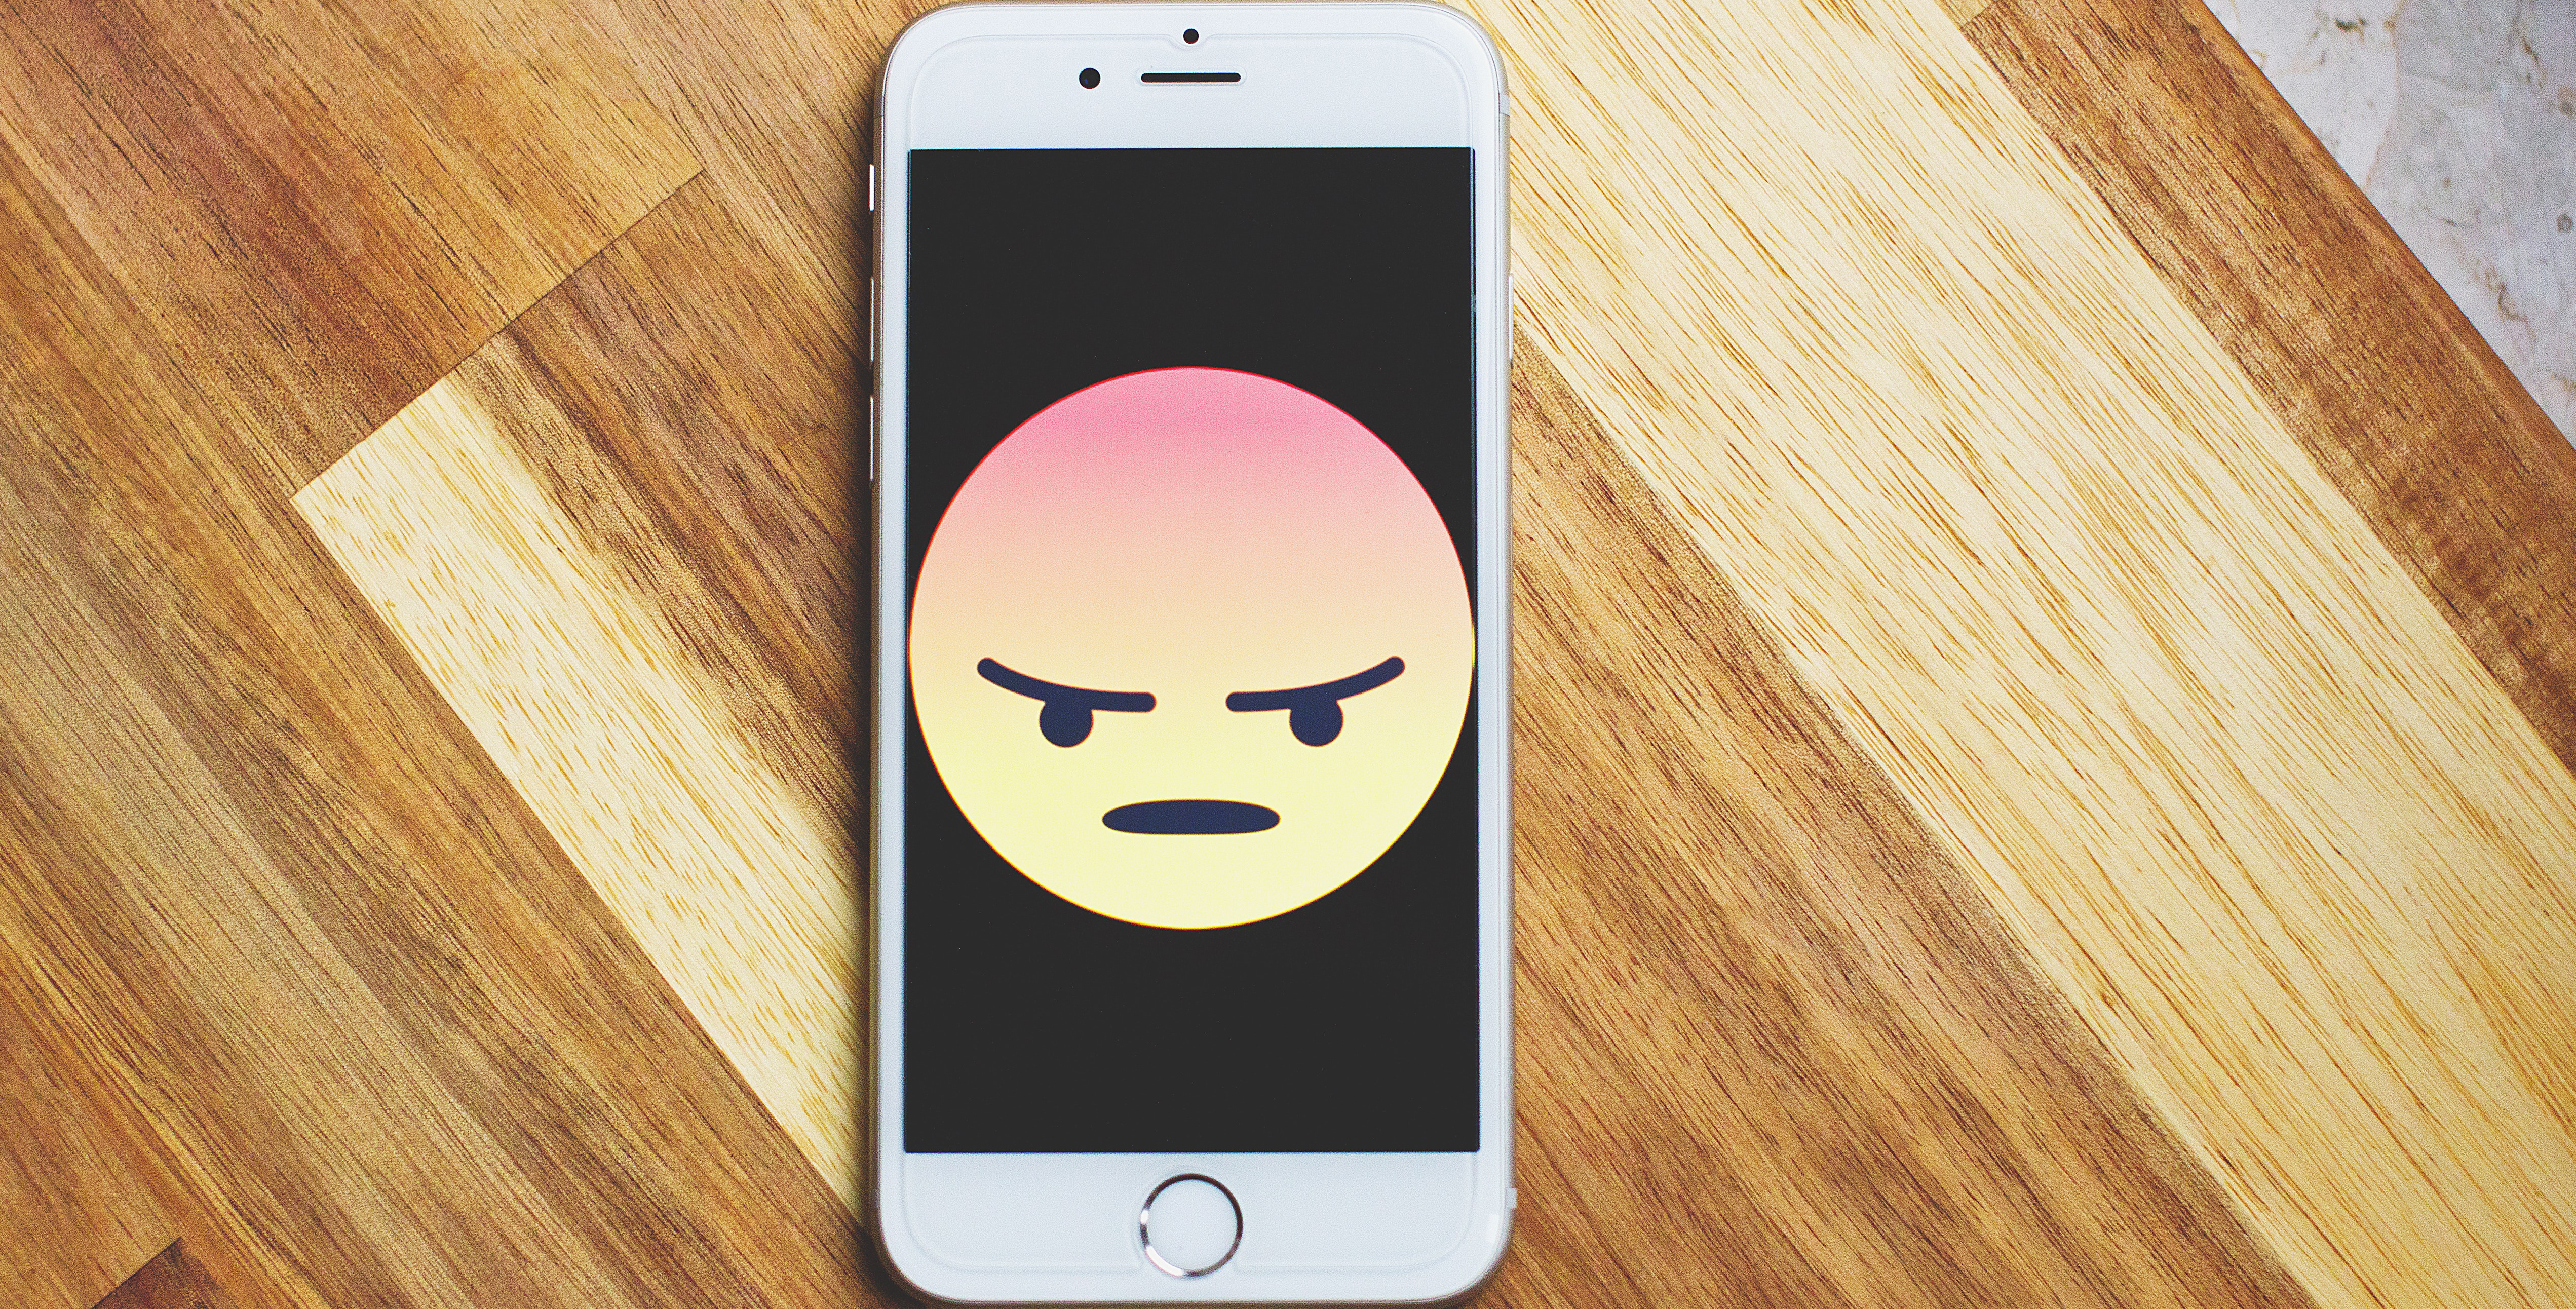 Increase in frustrated customers due to bad data